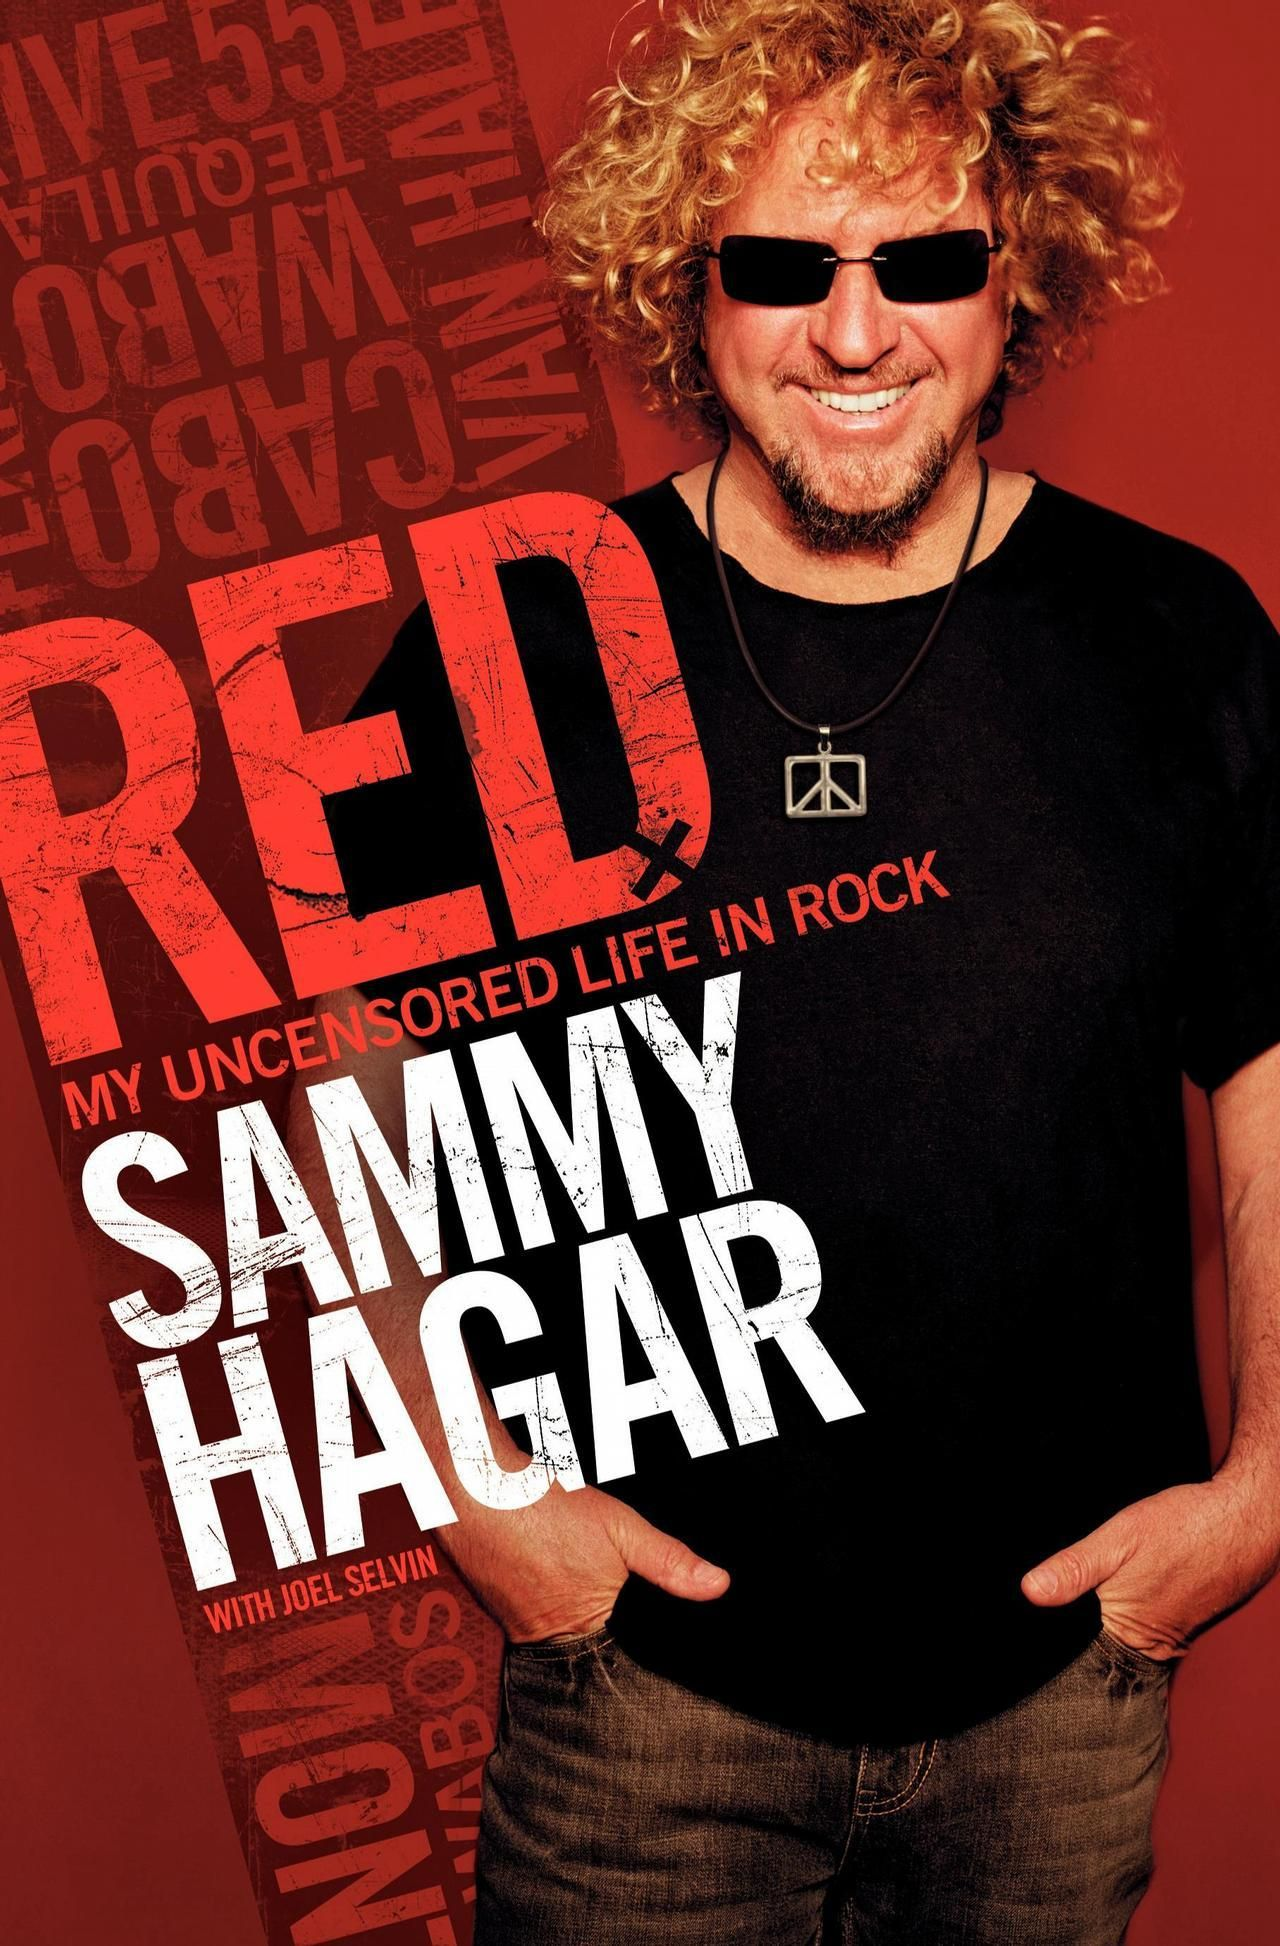 My Favorite Singer Tells His Life Story Lots Of Info On His Time With Van Halen Sammy Hagar Paperback Writer Books